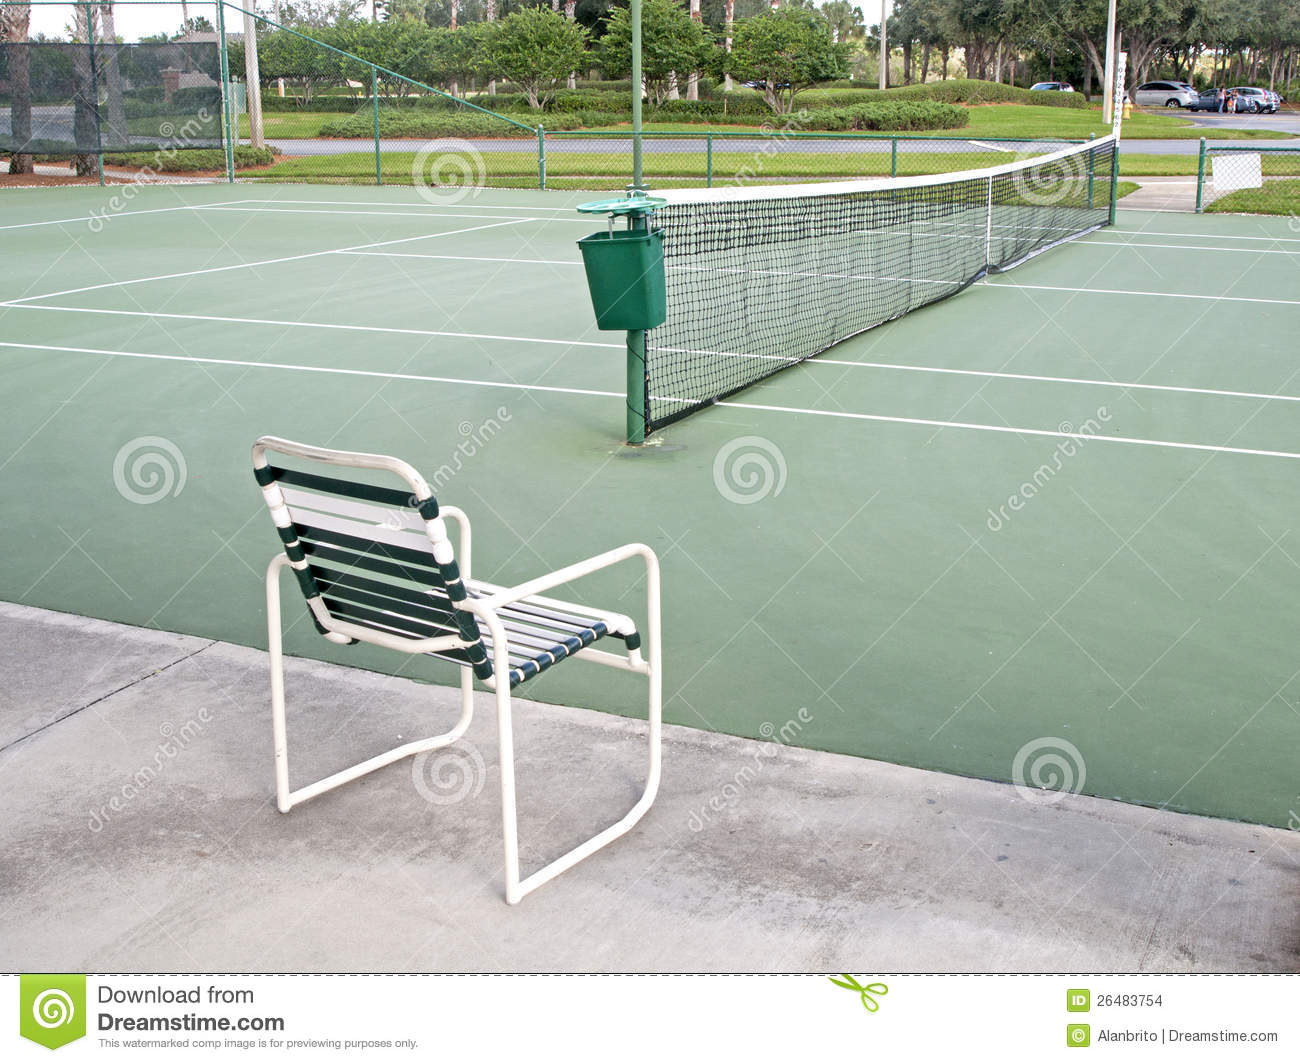 Download Tennis Court And A Chair Stock Photo. Image Of Sunshine   26483754